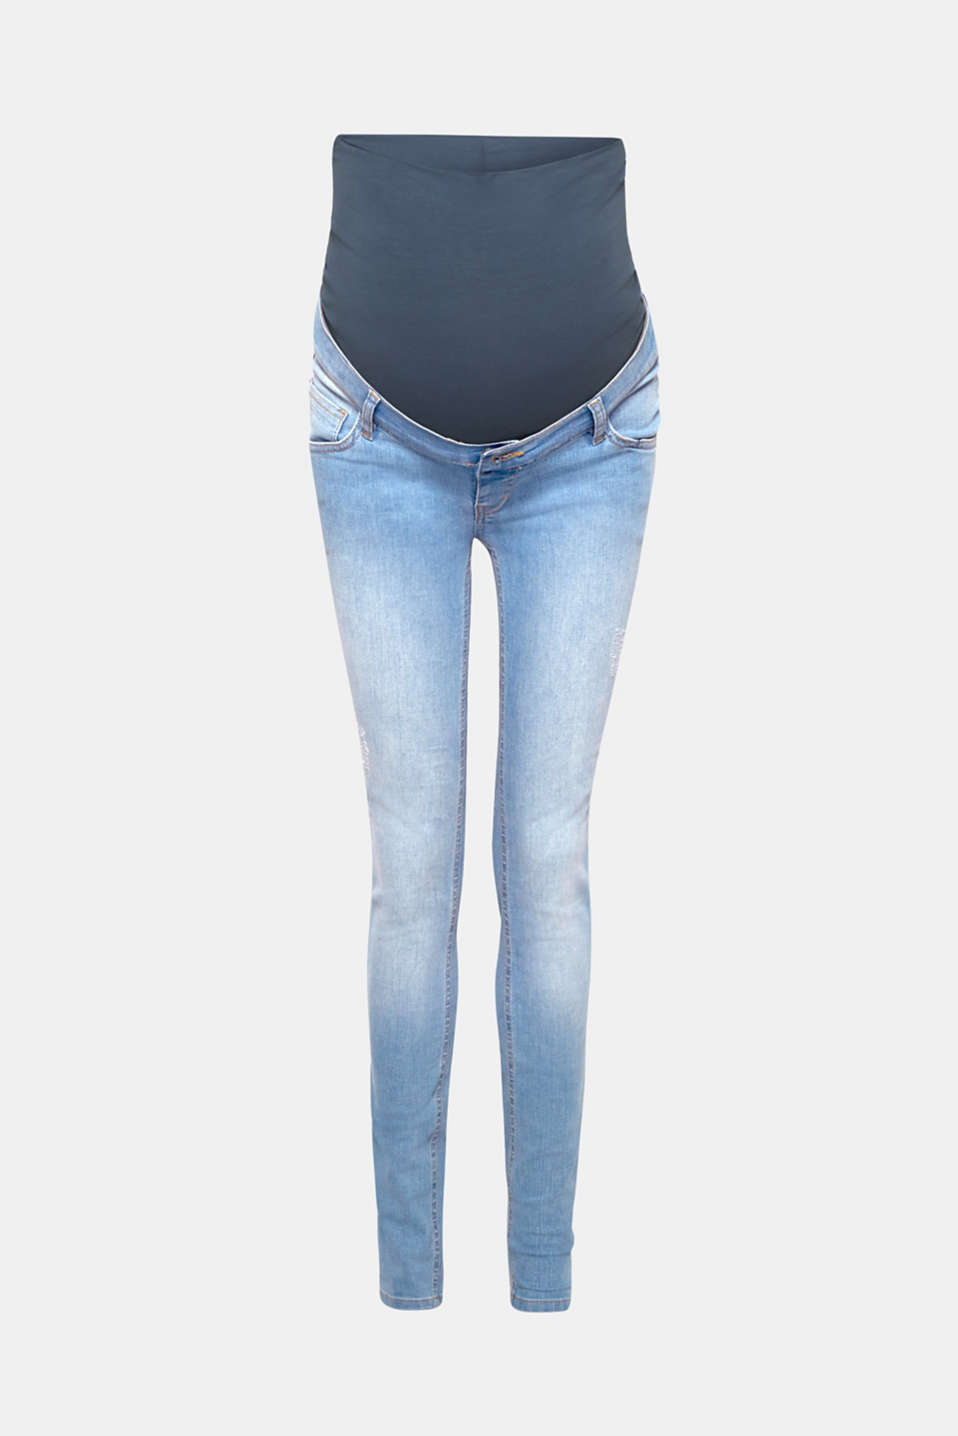 Fashion and function united: coolly styled stretch jeans with a destroyed finish and adjustable, over-bump waistband!